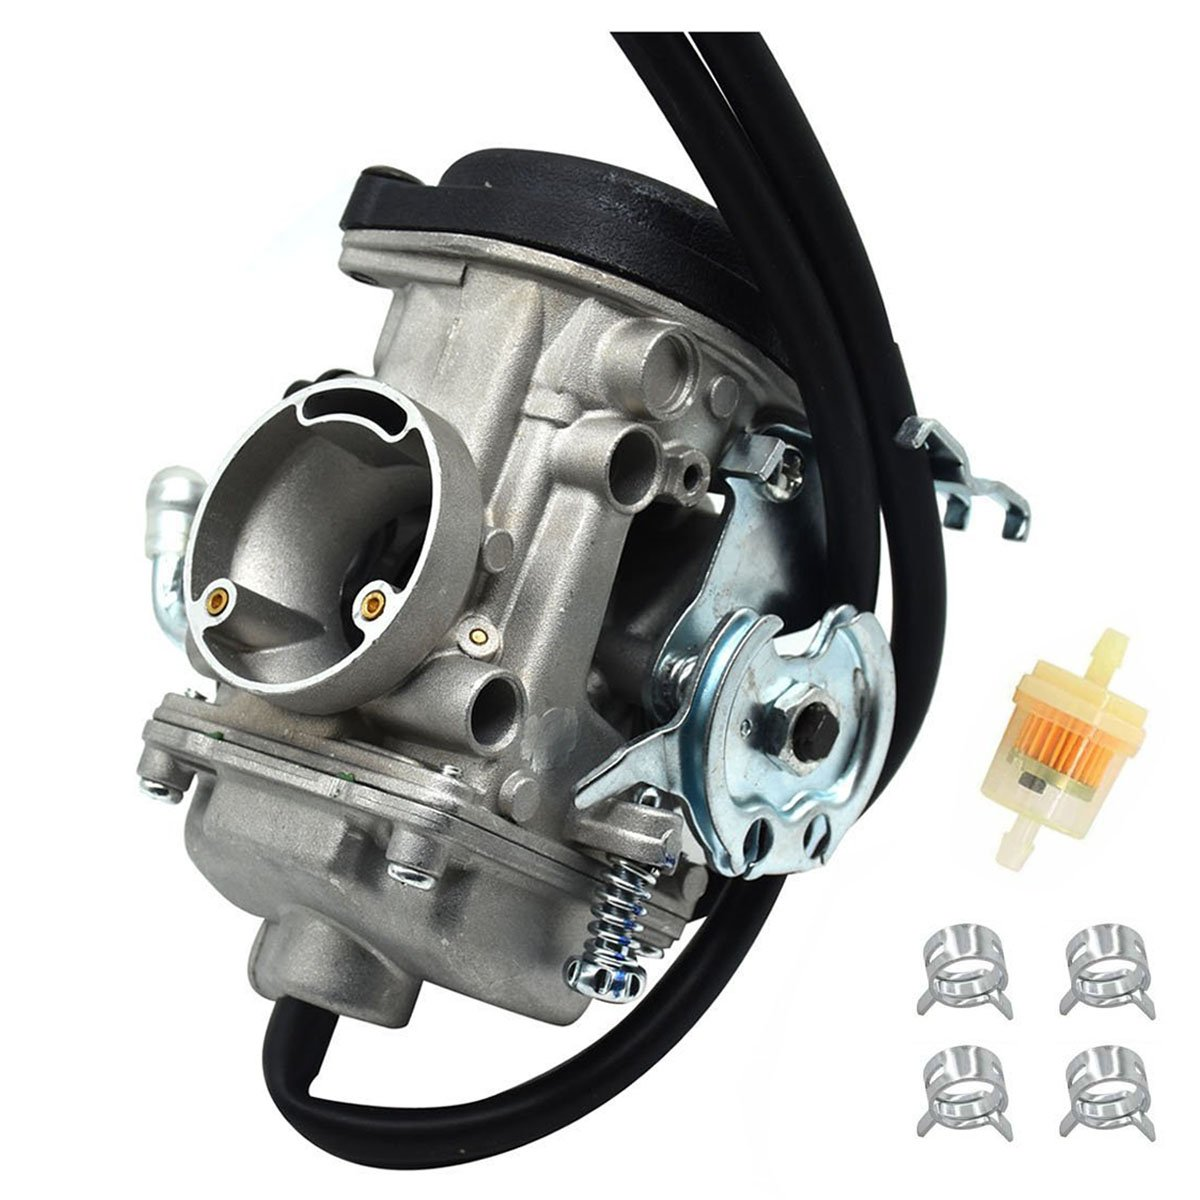 5FY-14301-00-00 Karbay Carburetor For 2001-2017 Trailway Replace TW200 TK250 TW 200 Carb by Karbay